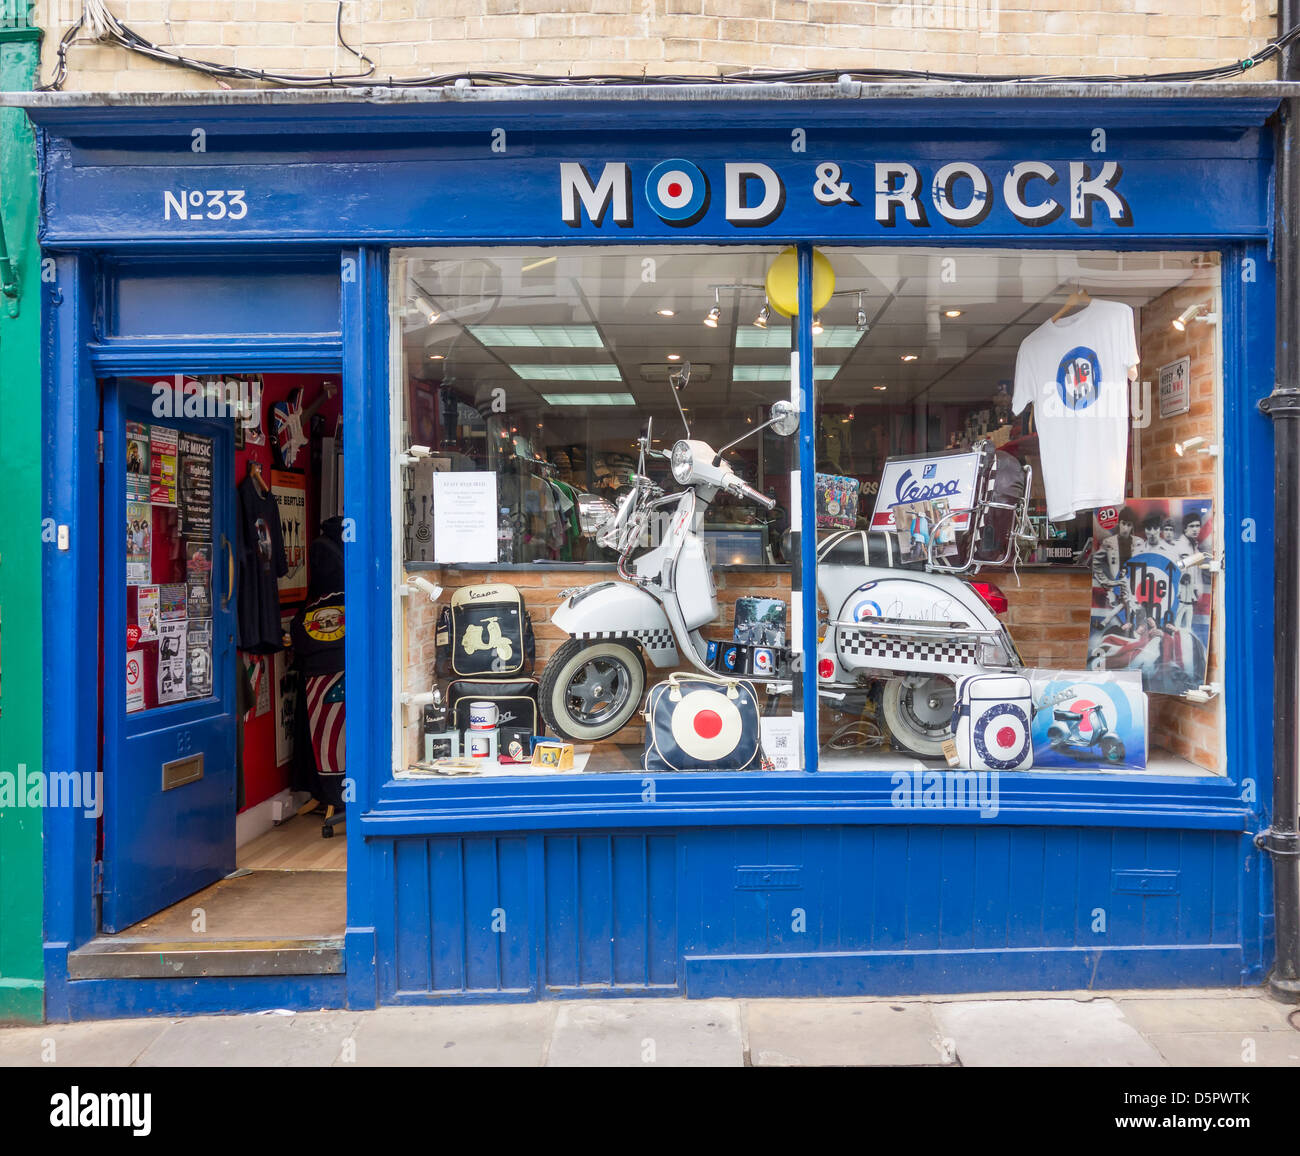 Mods and Rockers 60s Revival Shop Mod and Rock Vespa Scooter - Stock Image